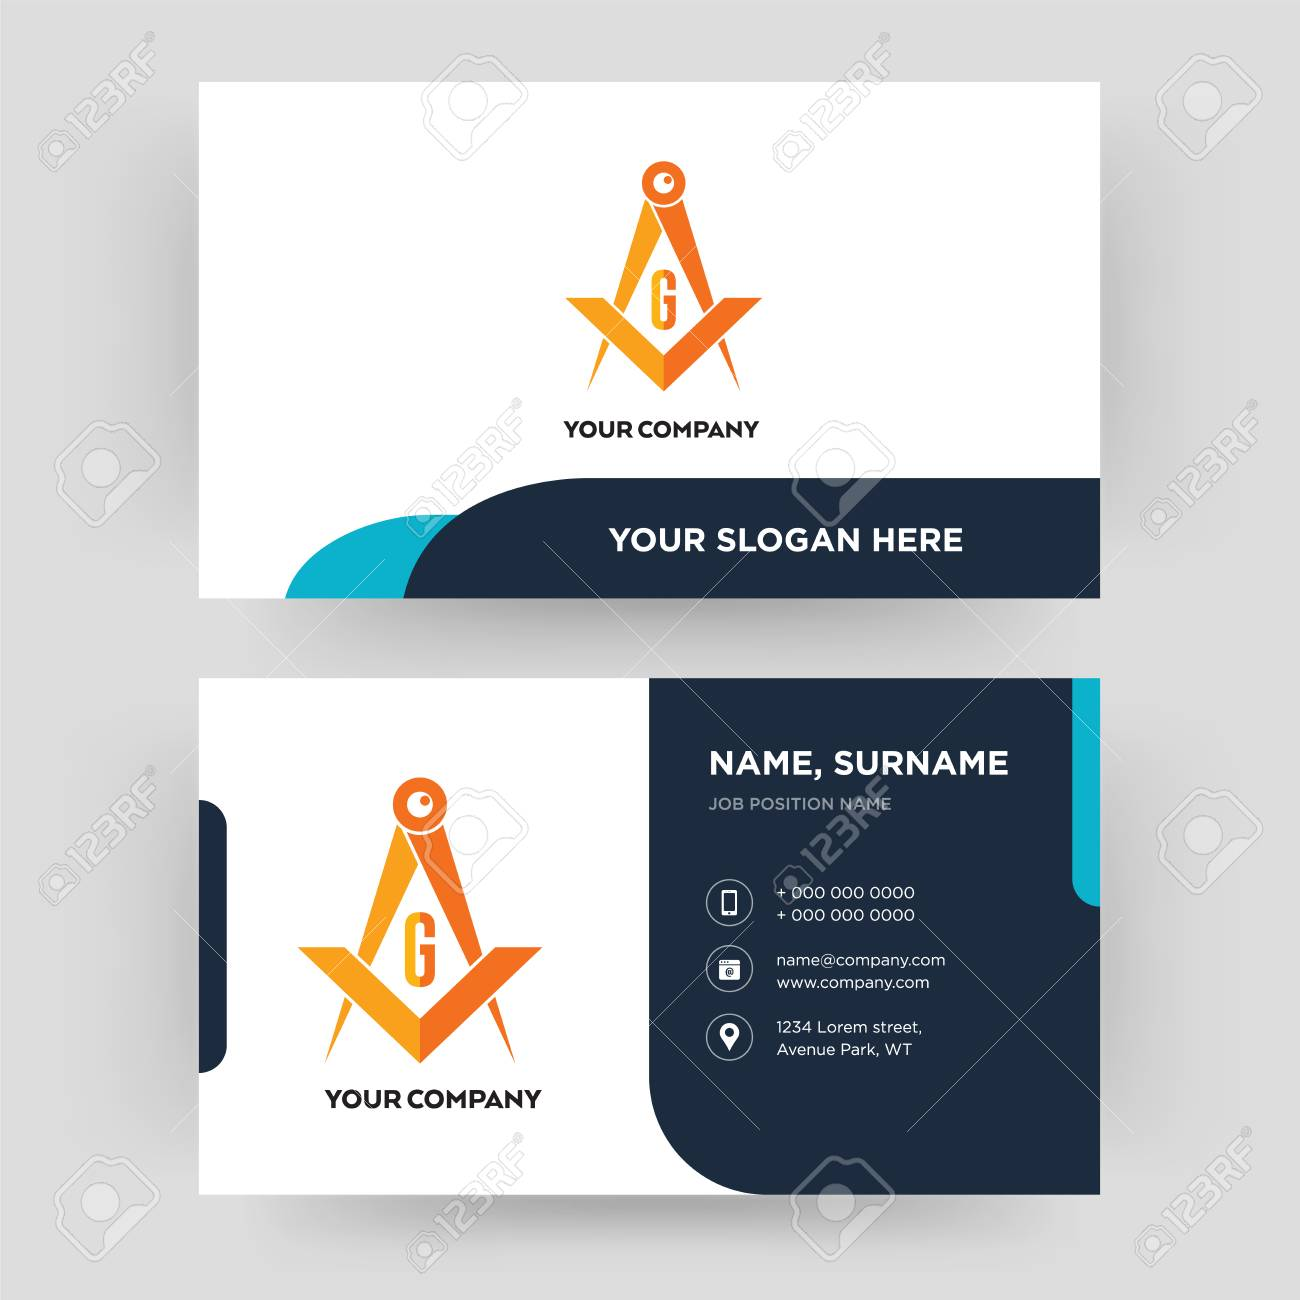 Masonic business card design template visiting for your company masonic business card design template visiting for your company modern creative and clean colourmoves